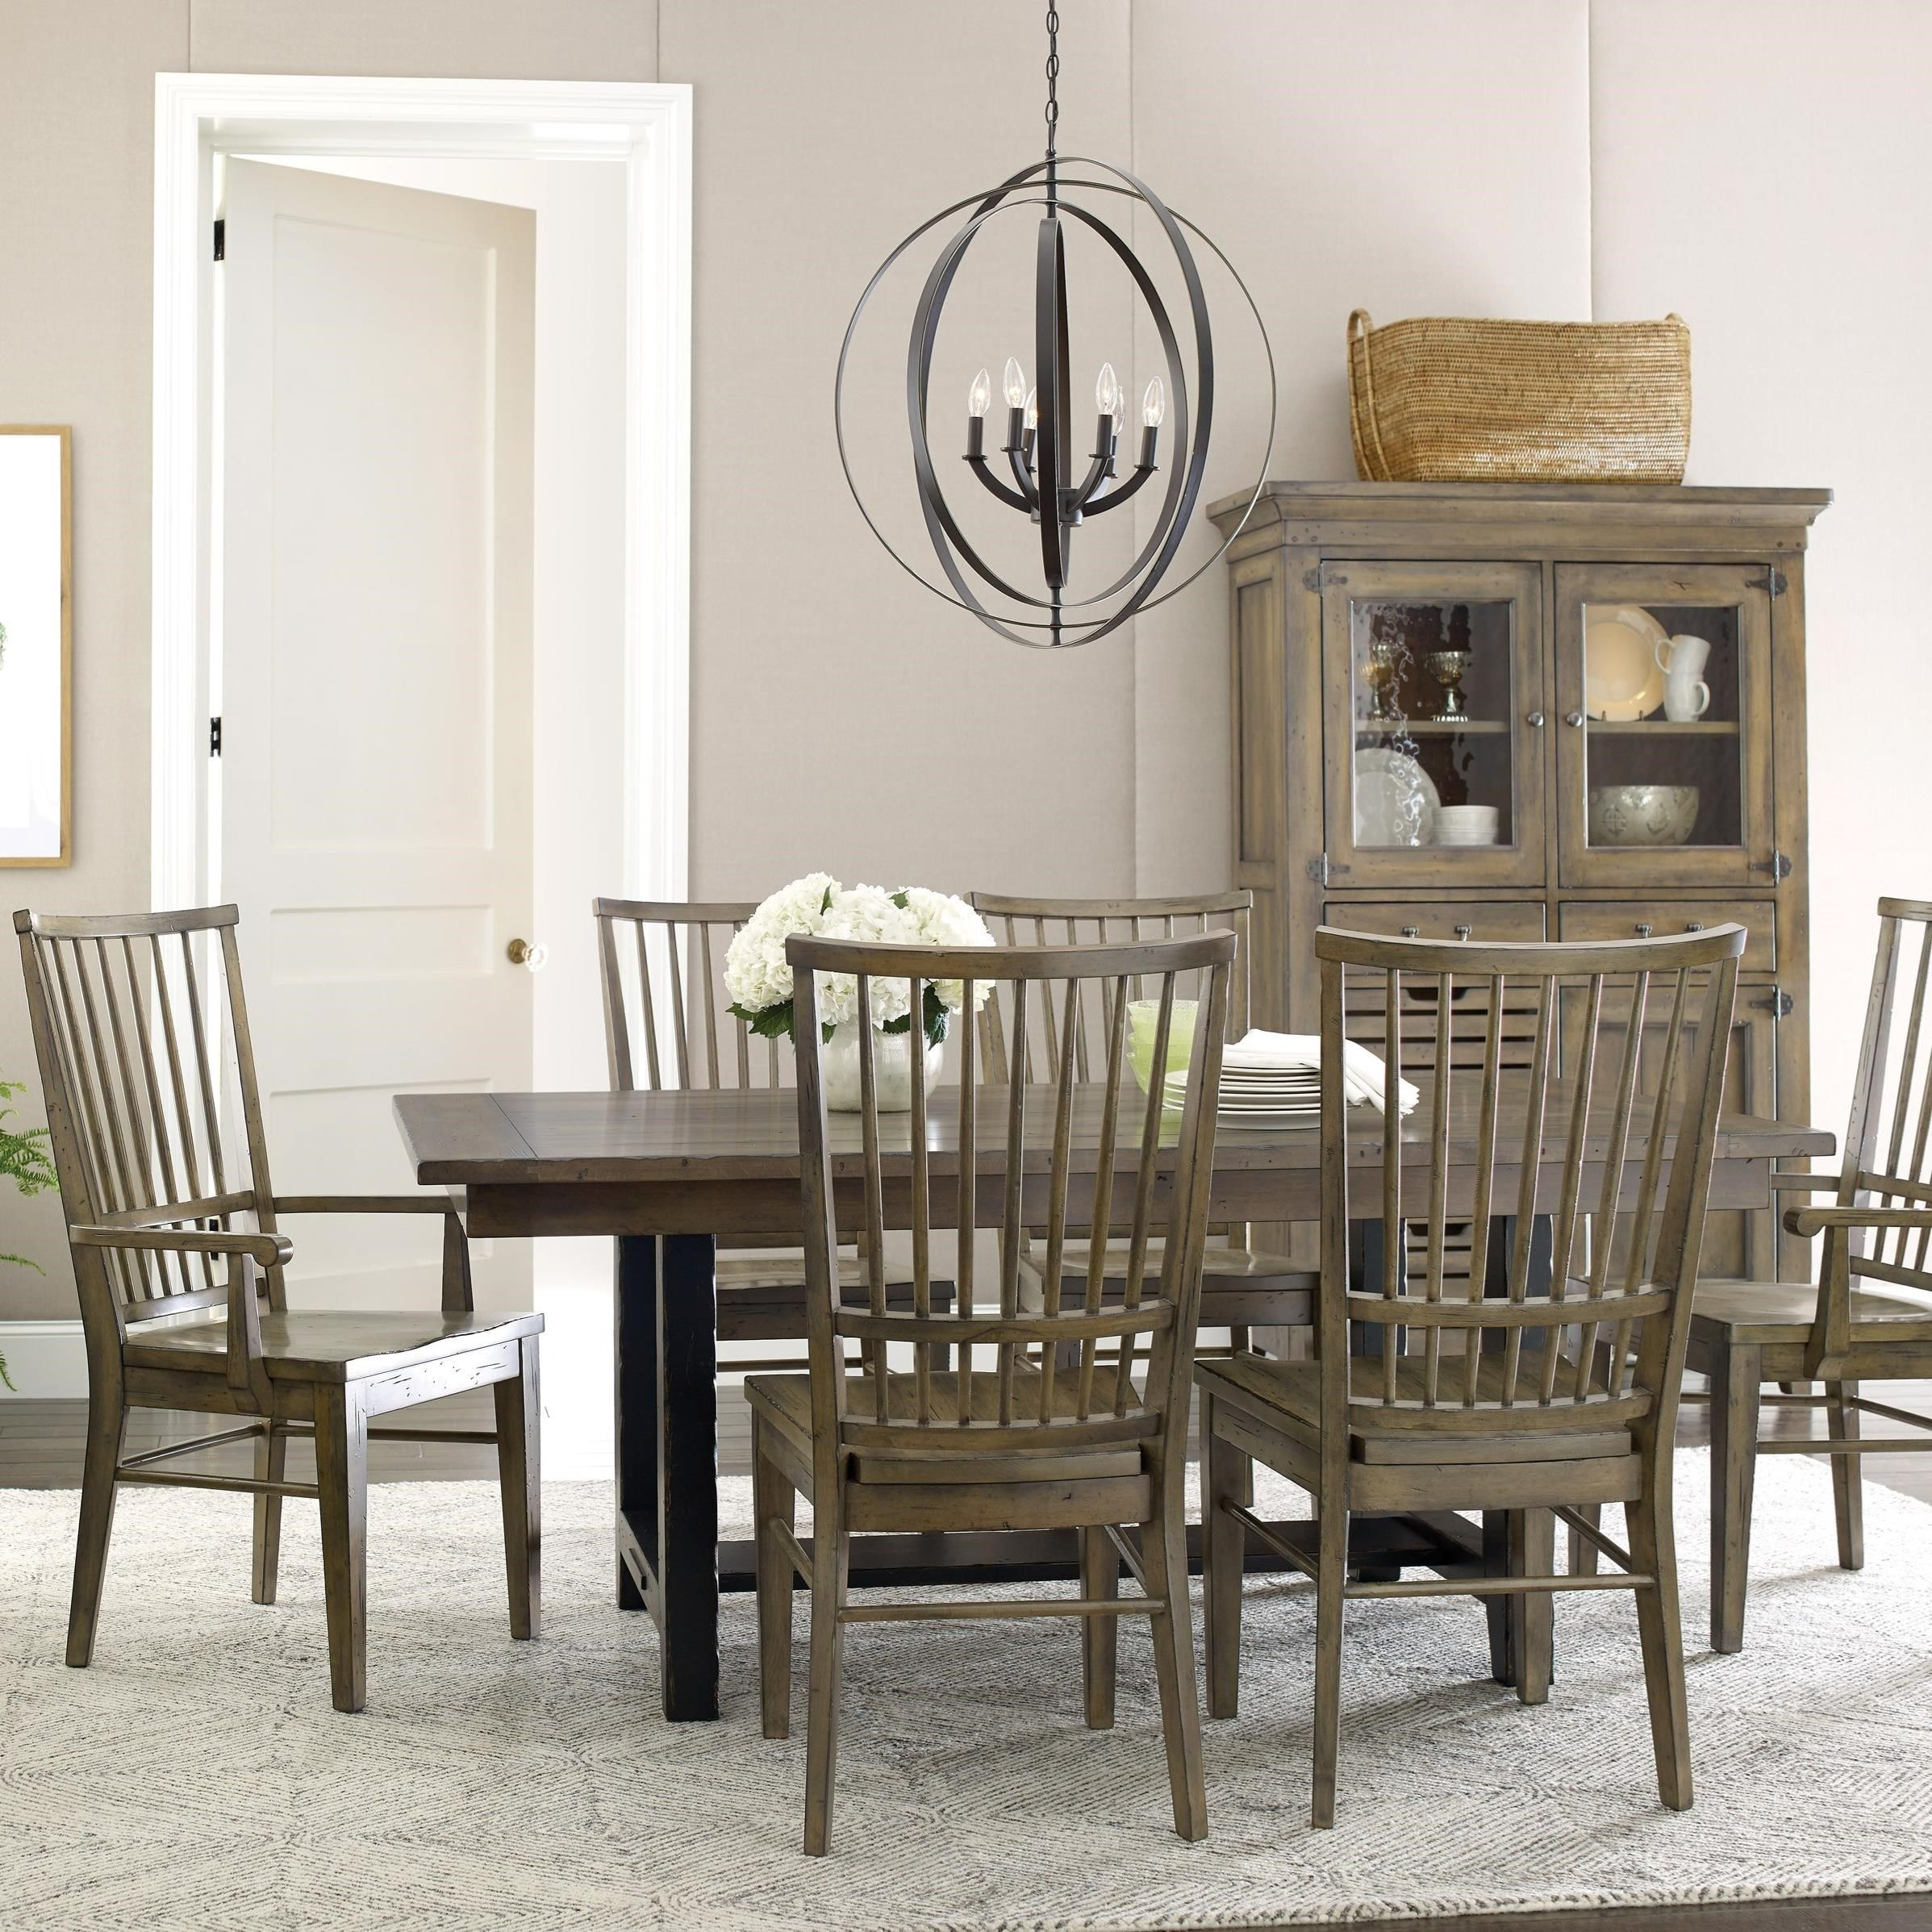 Mill House Dining Table Set With 6 Chairs By Kincaid Furniture At Belfort Furniture Dining Table Setting Dining Table Kitchen Table Settings